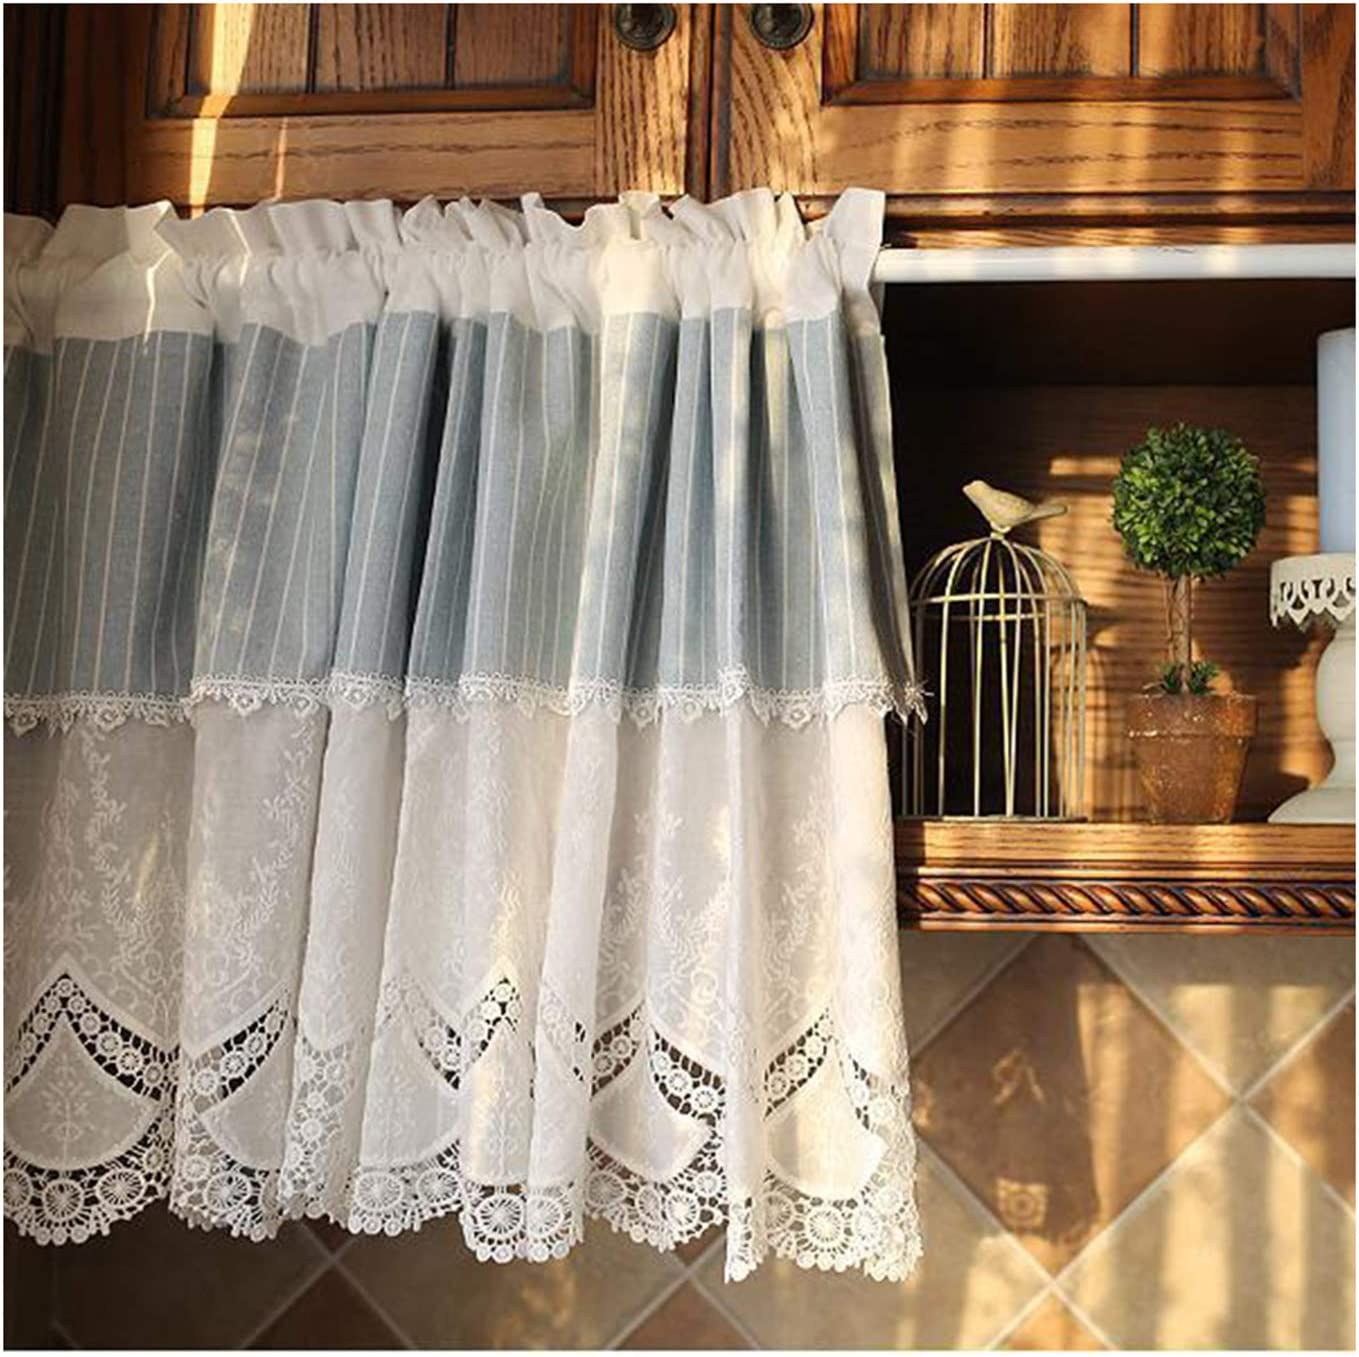 F-XW 21 45in Kitchen Tier Sale price Embroidery Limited time sale Cotton Curt Small Curtains